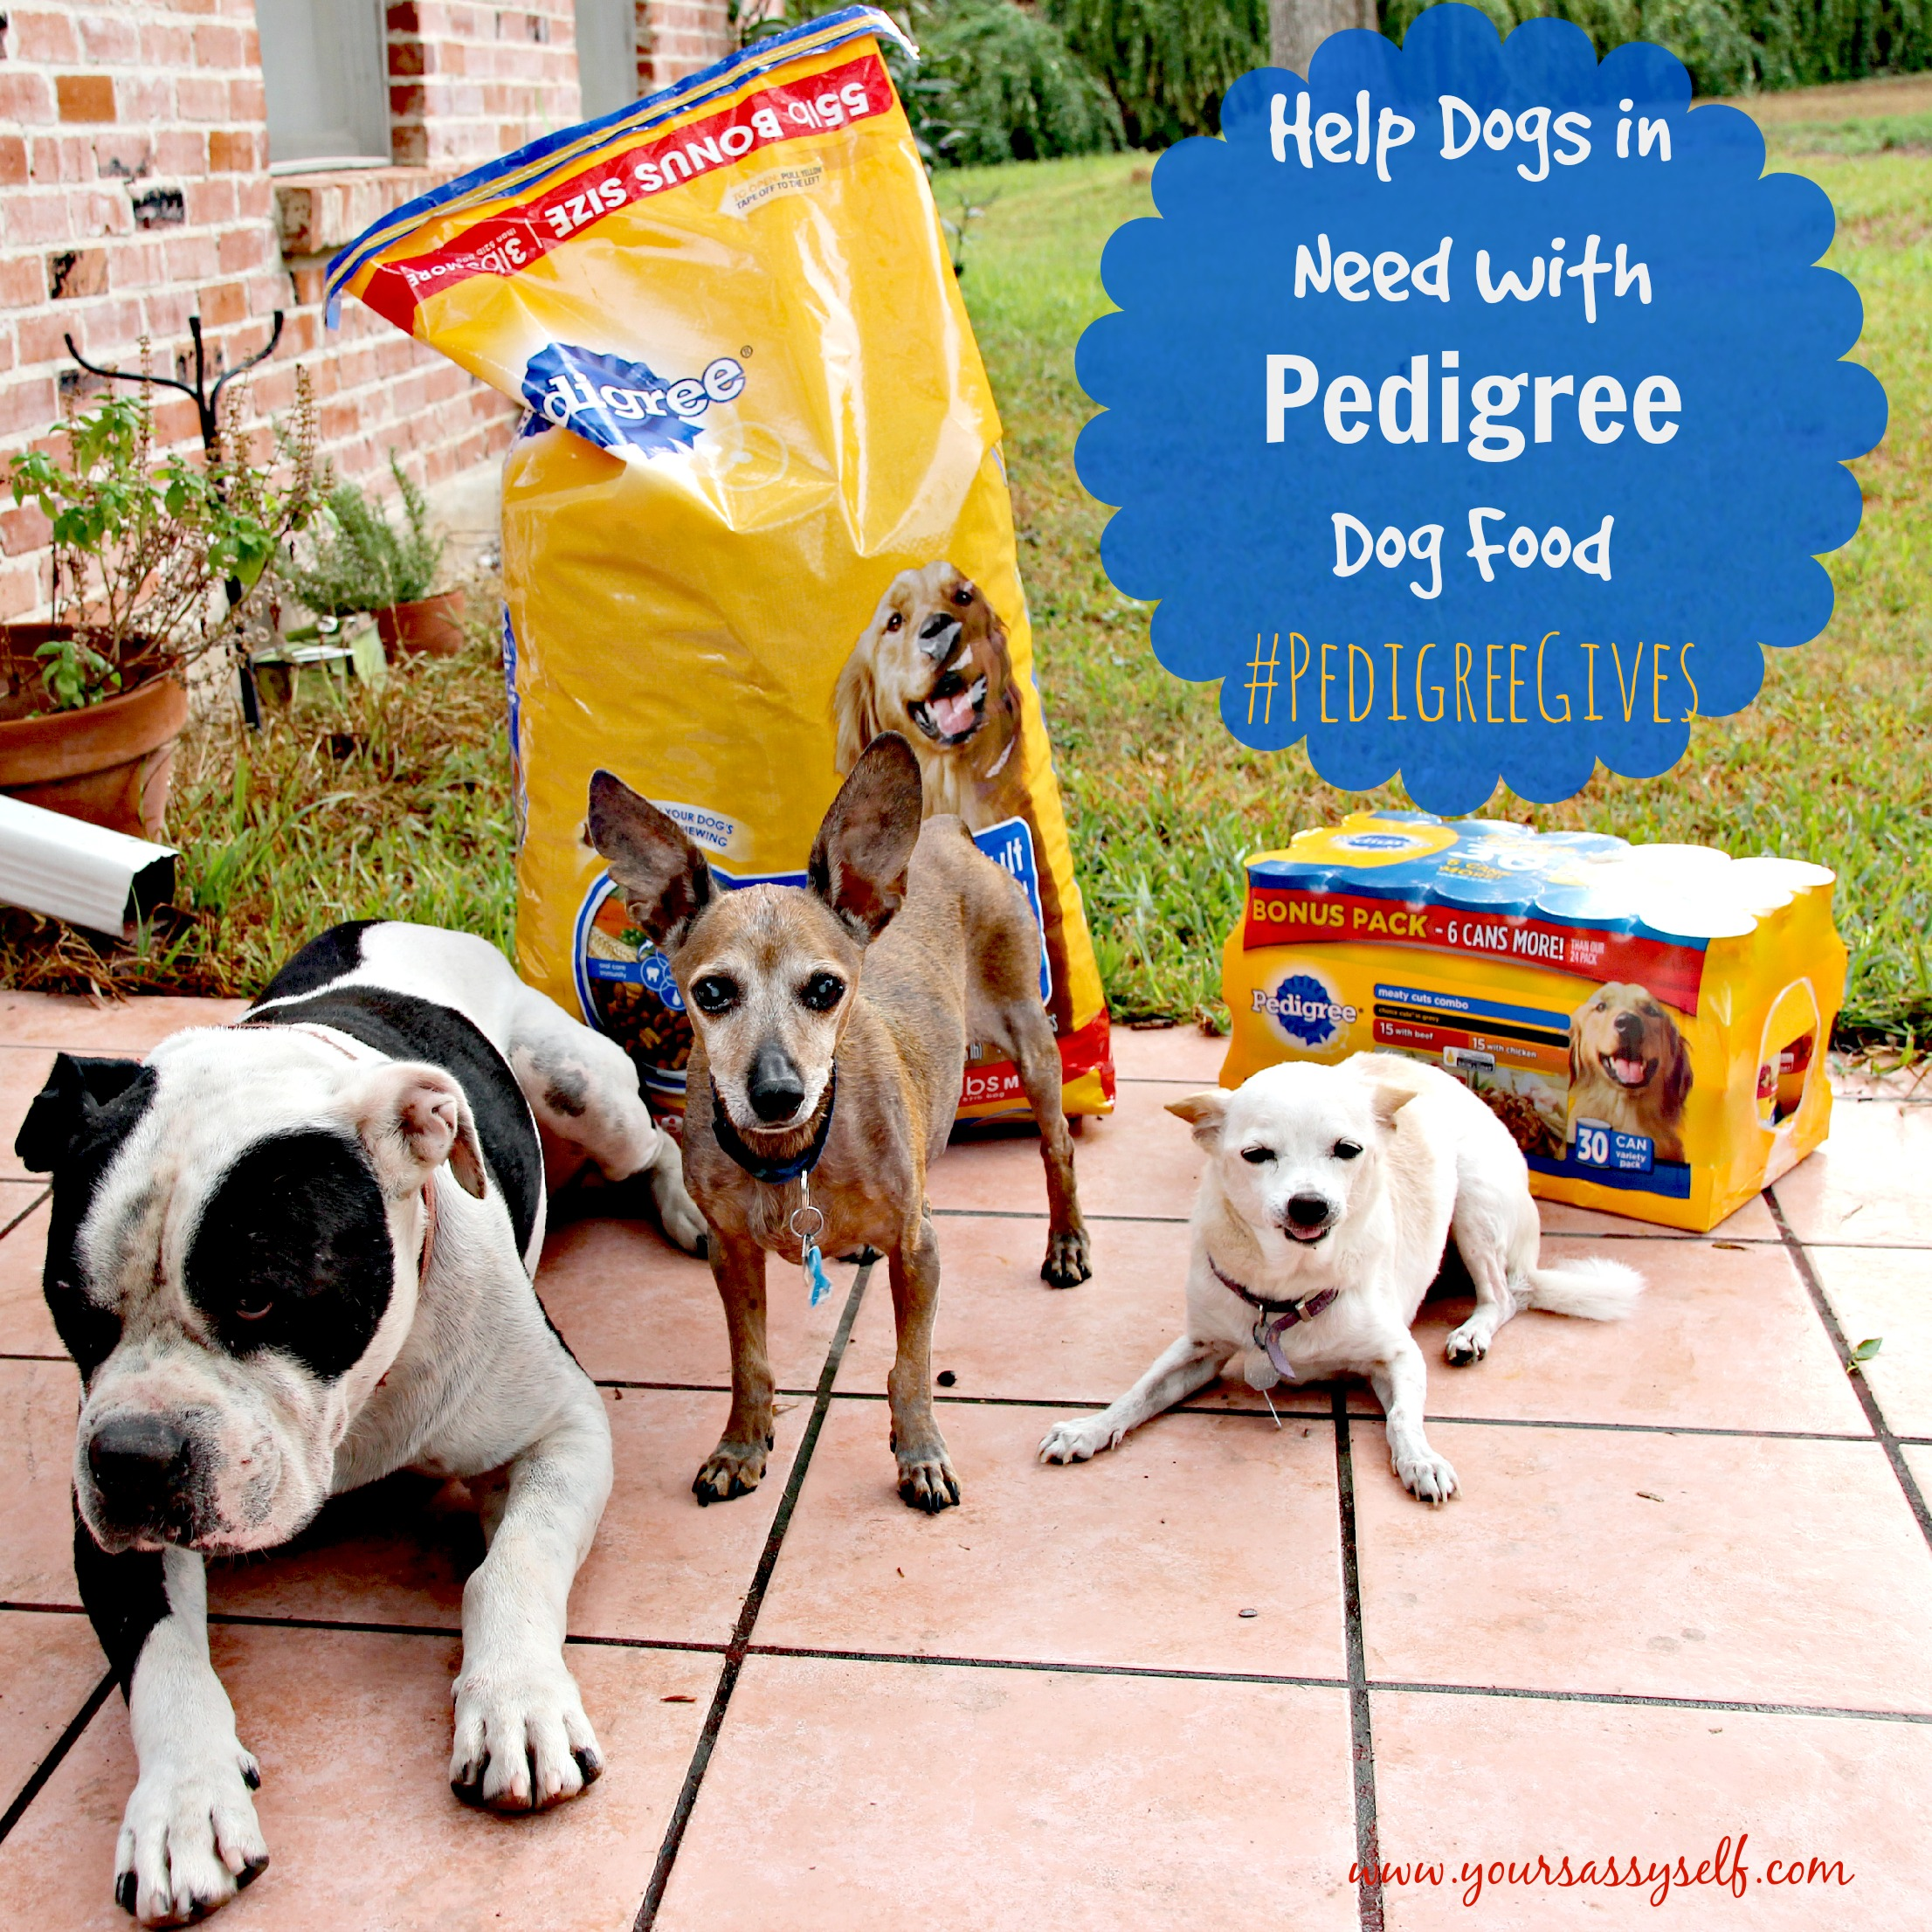 Help Dogs in Need With Pedigree Dog Food #PedigreeGives